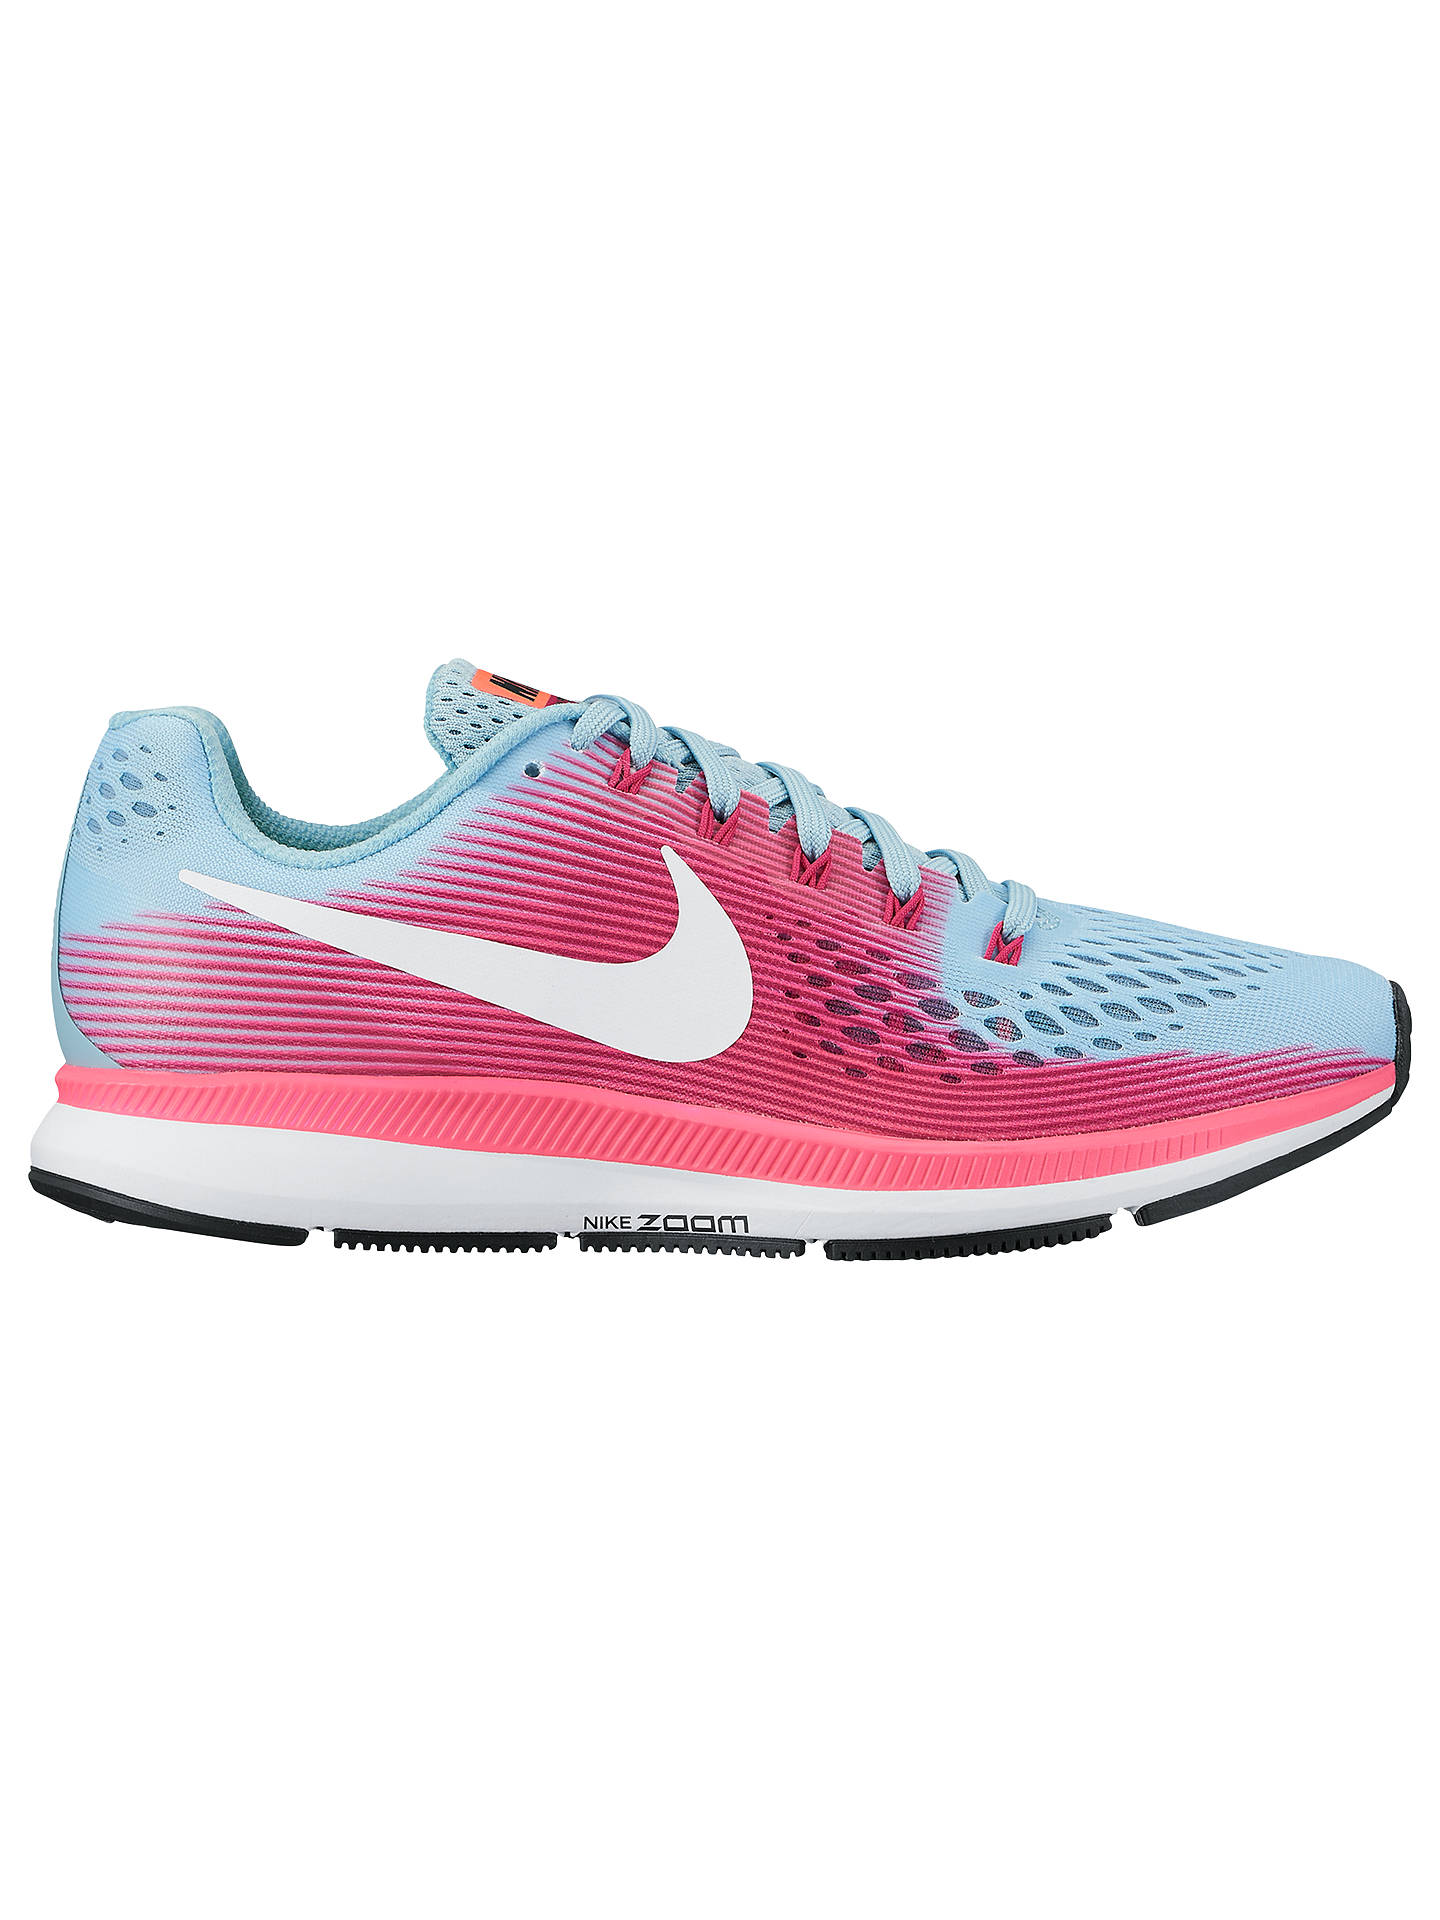 e04bedfc2ed Nike Air Zoom Pegasus 34 Women s Running Shoes at John Lewis   Partners